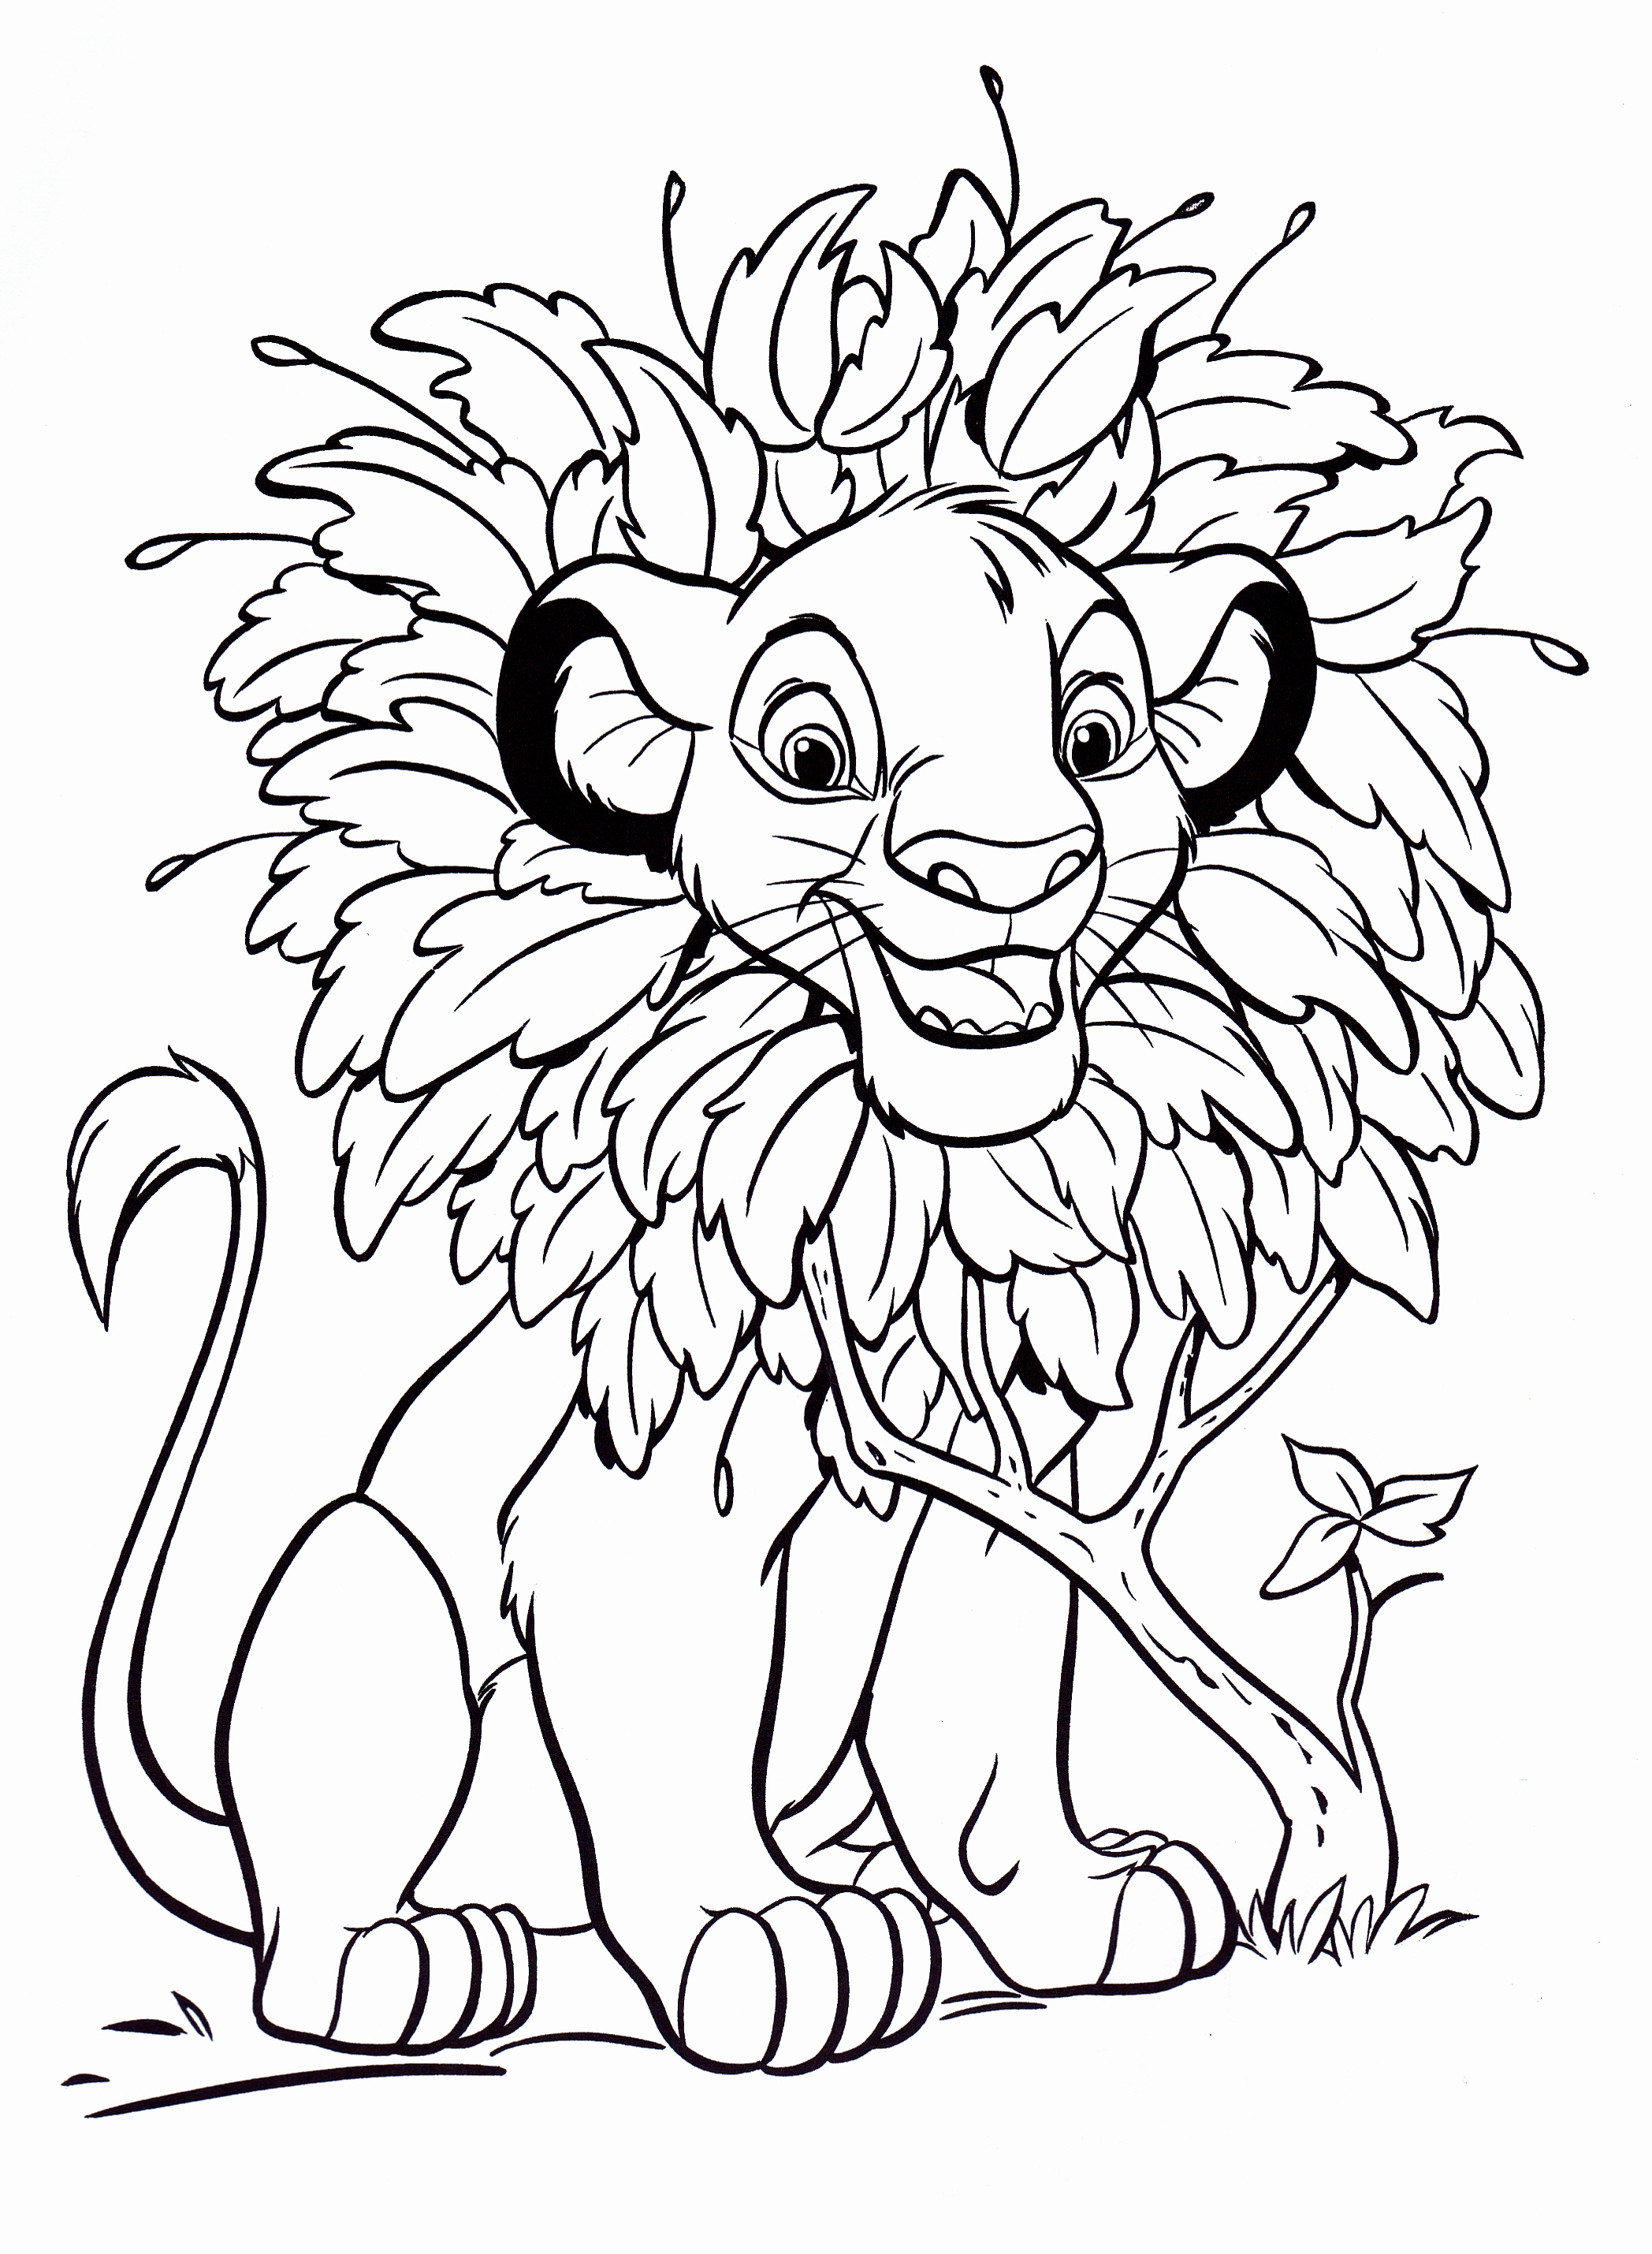 childrens awards coloring pages - photo#32